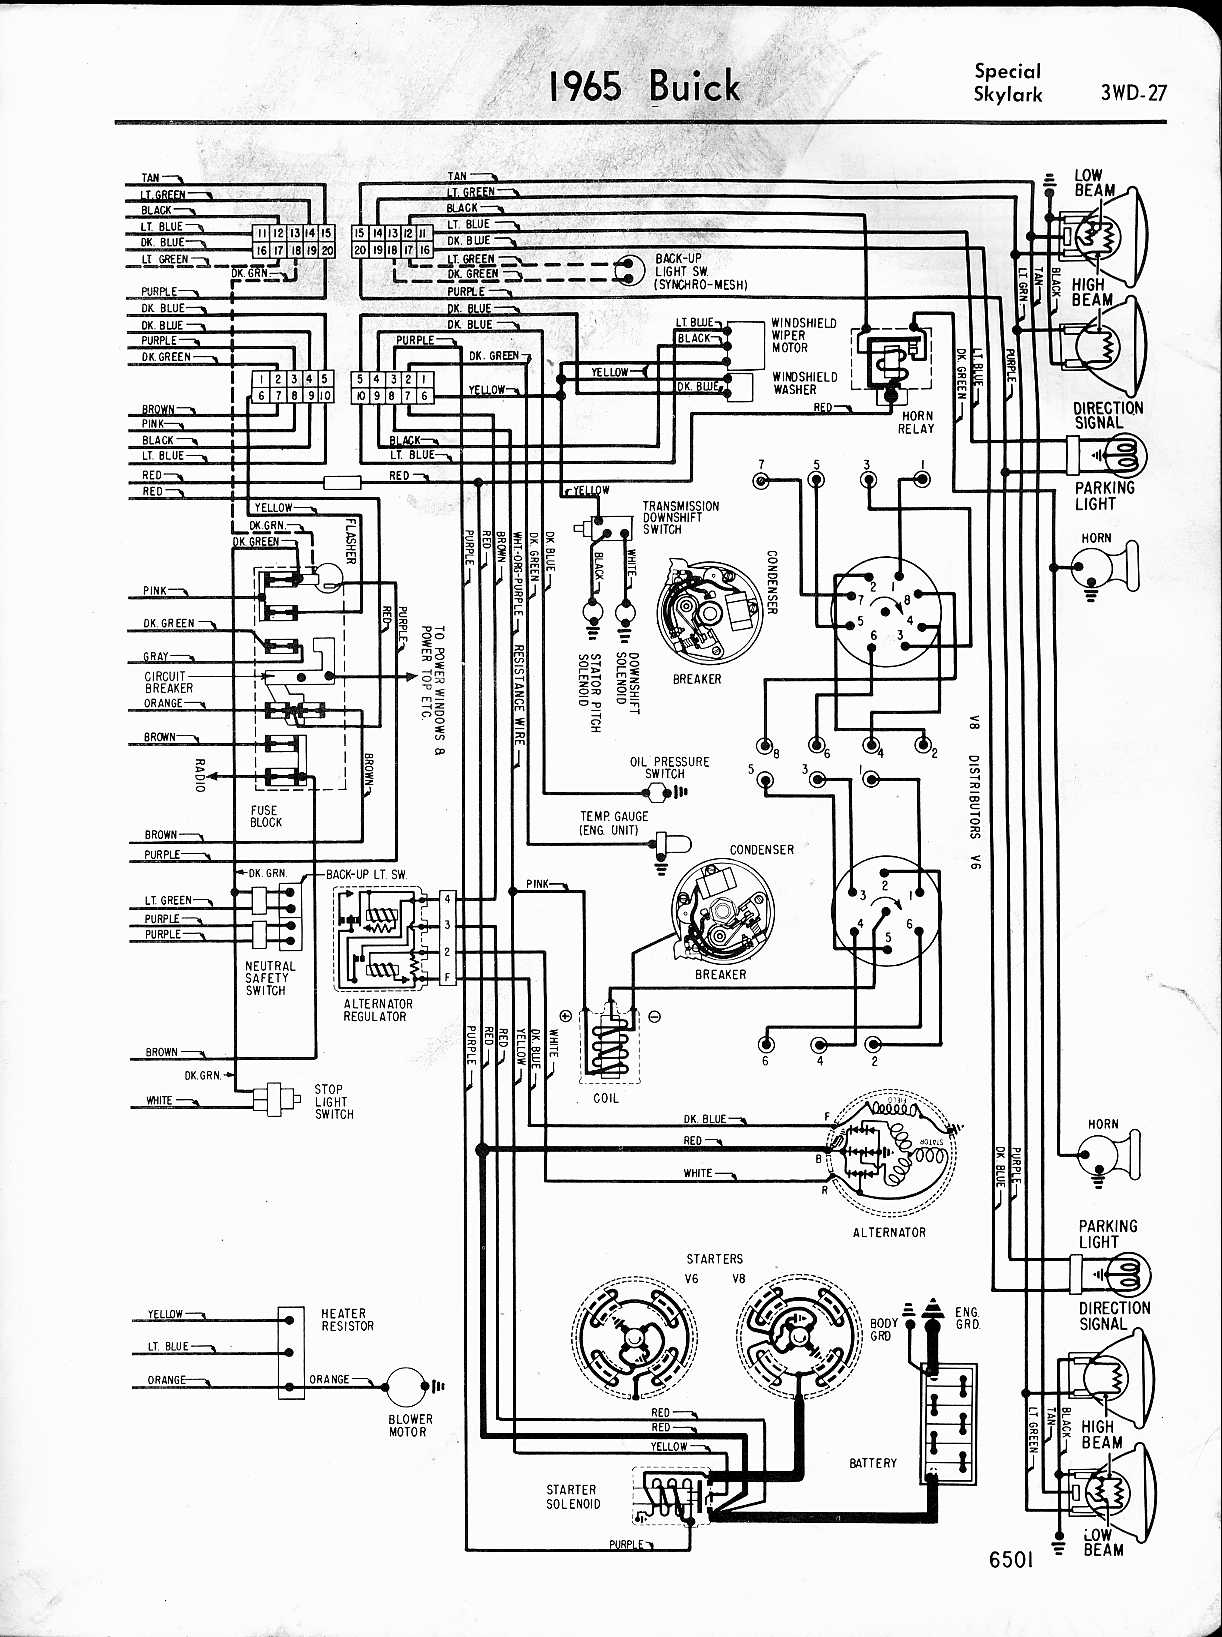 1969 buick skylark wiring diagram wiring diagrams u2022 rh autonomia co